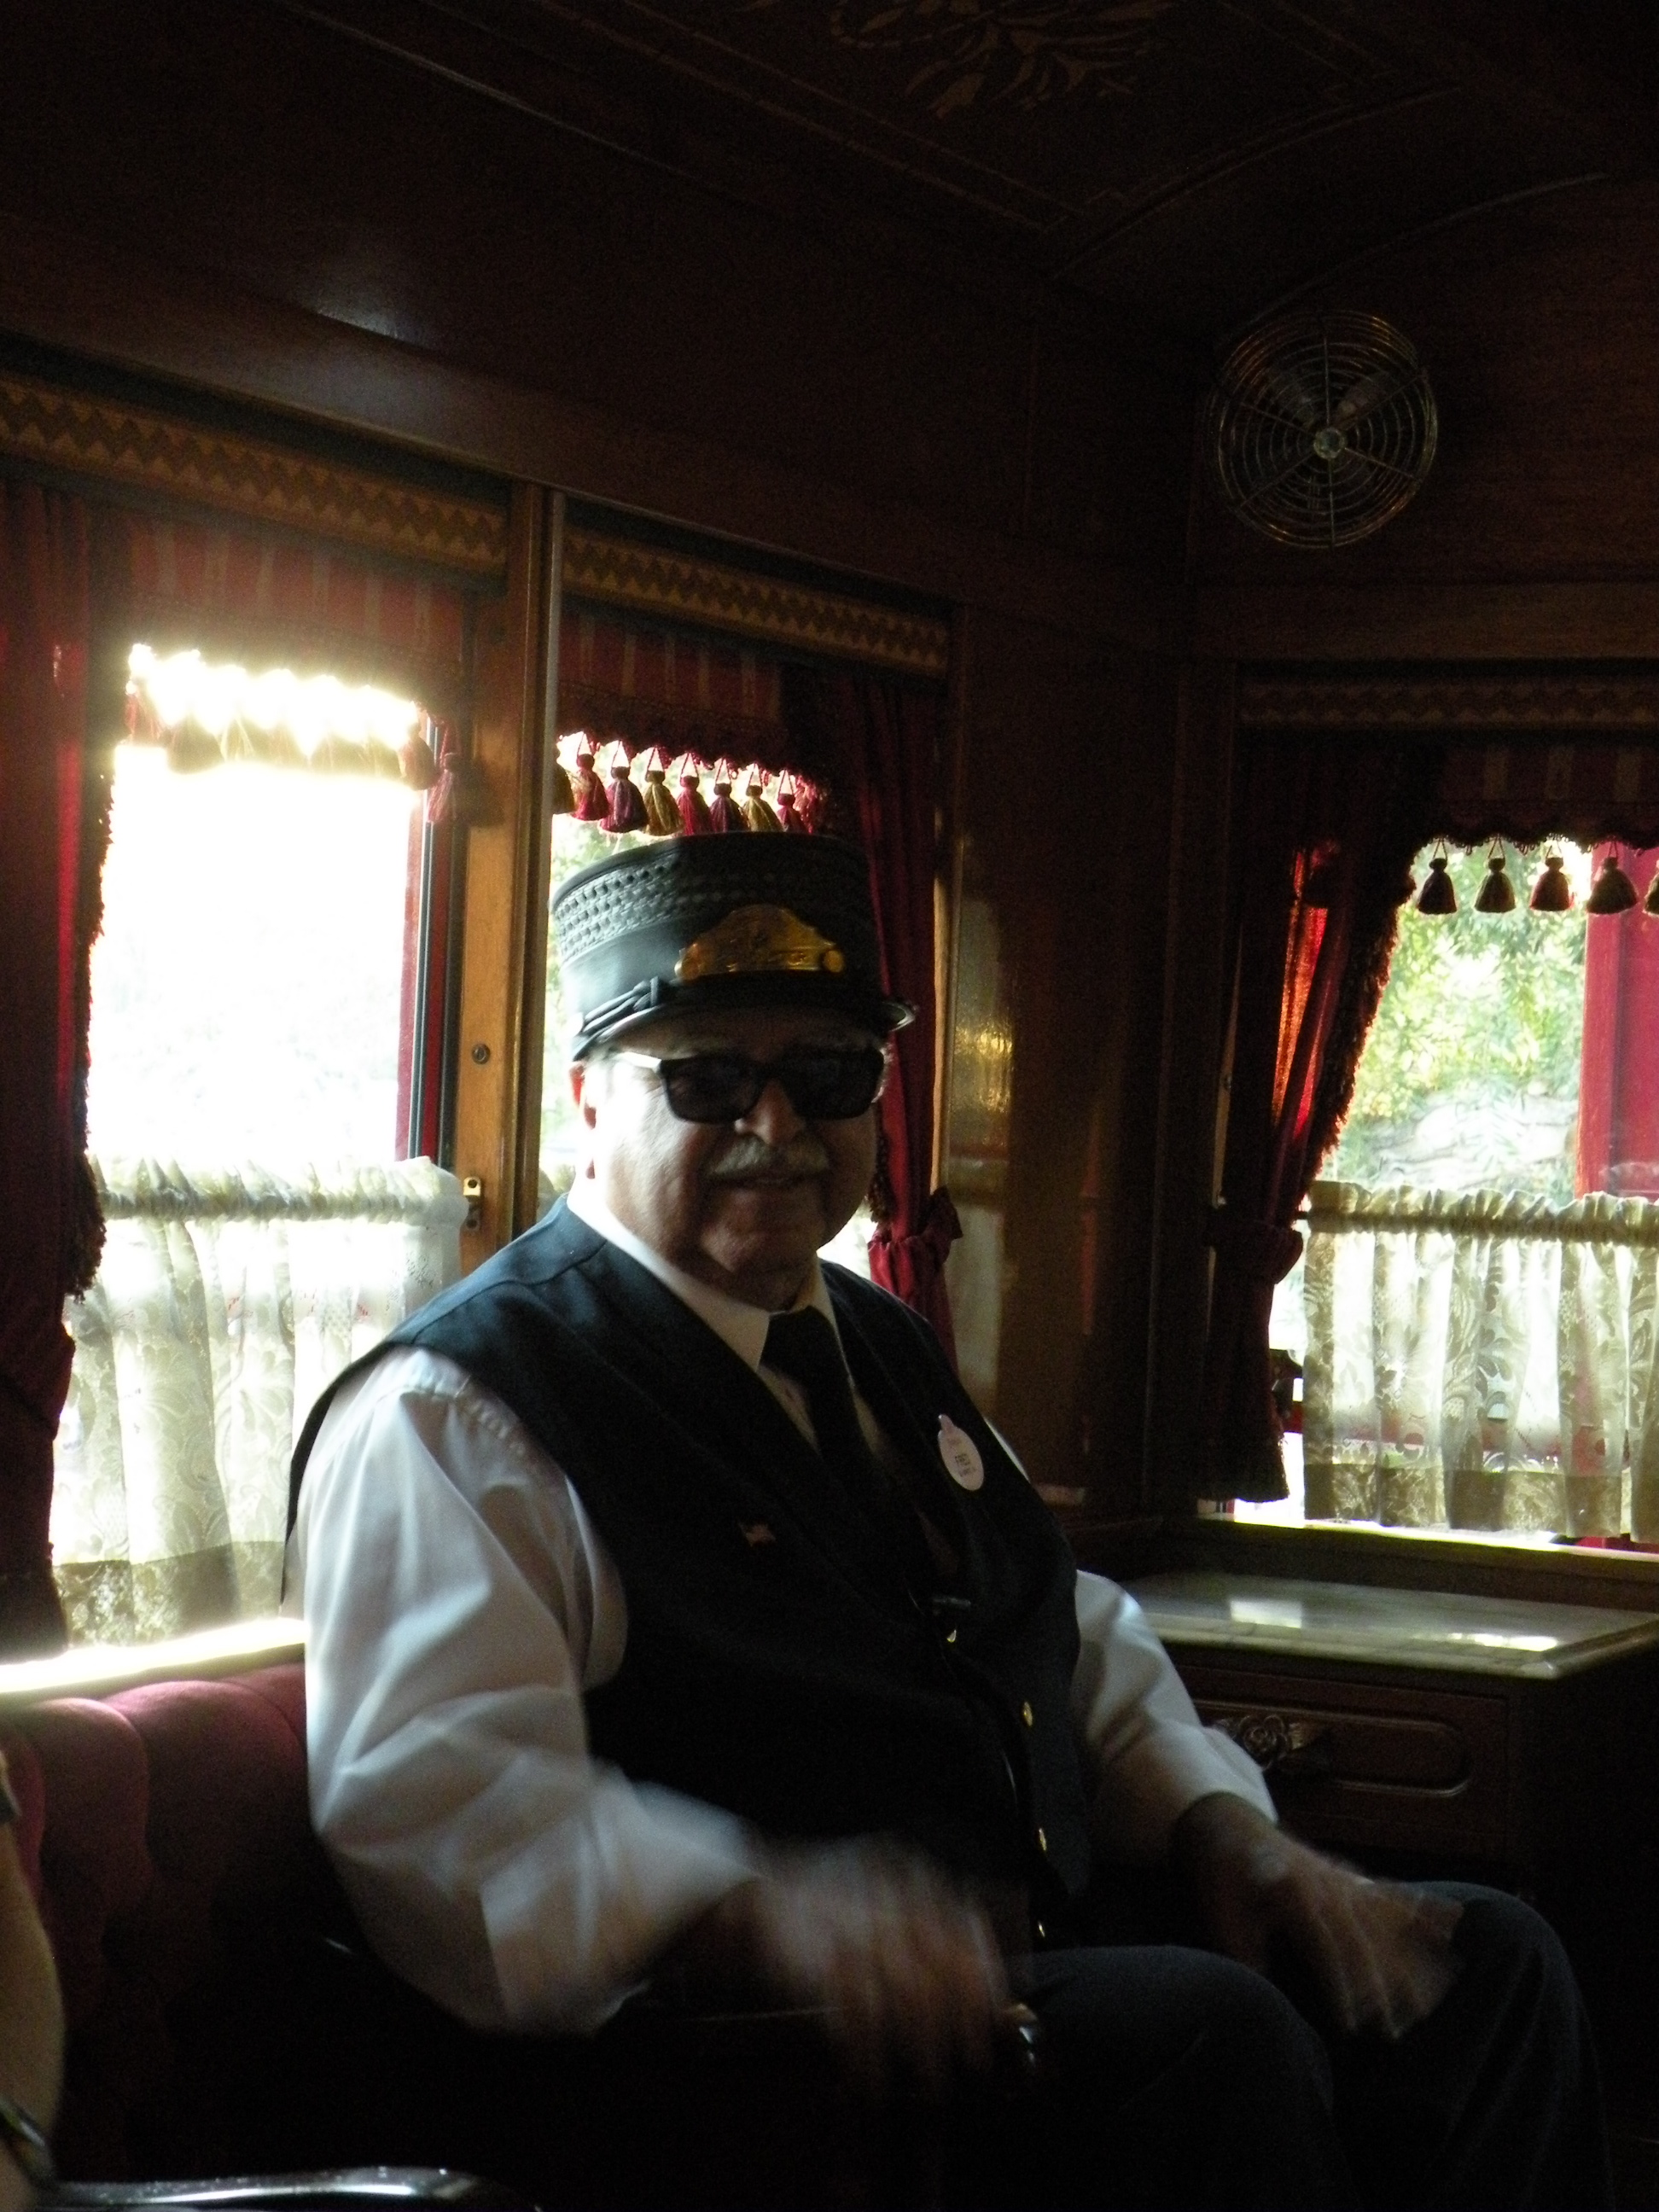 Conductor for the Lilly Belle